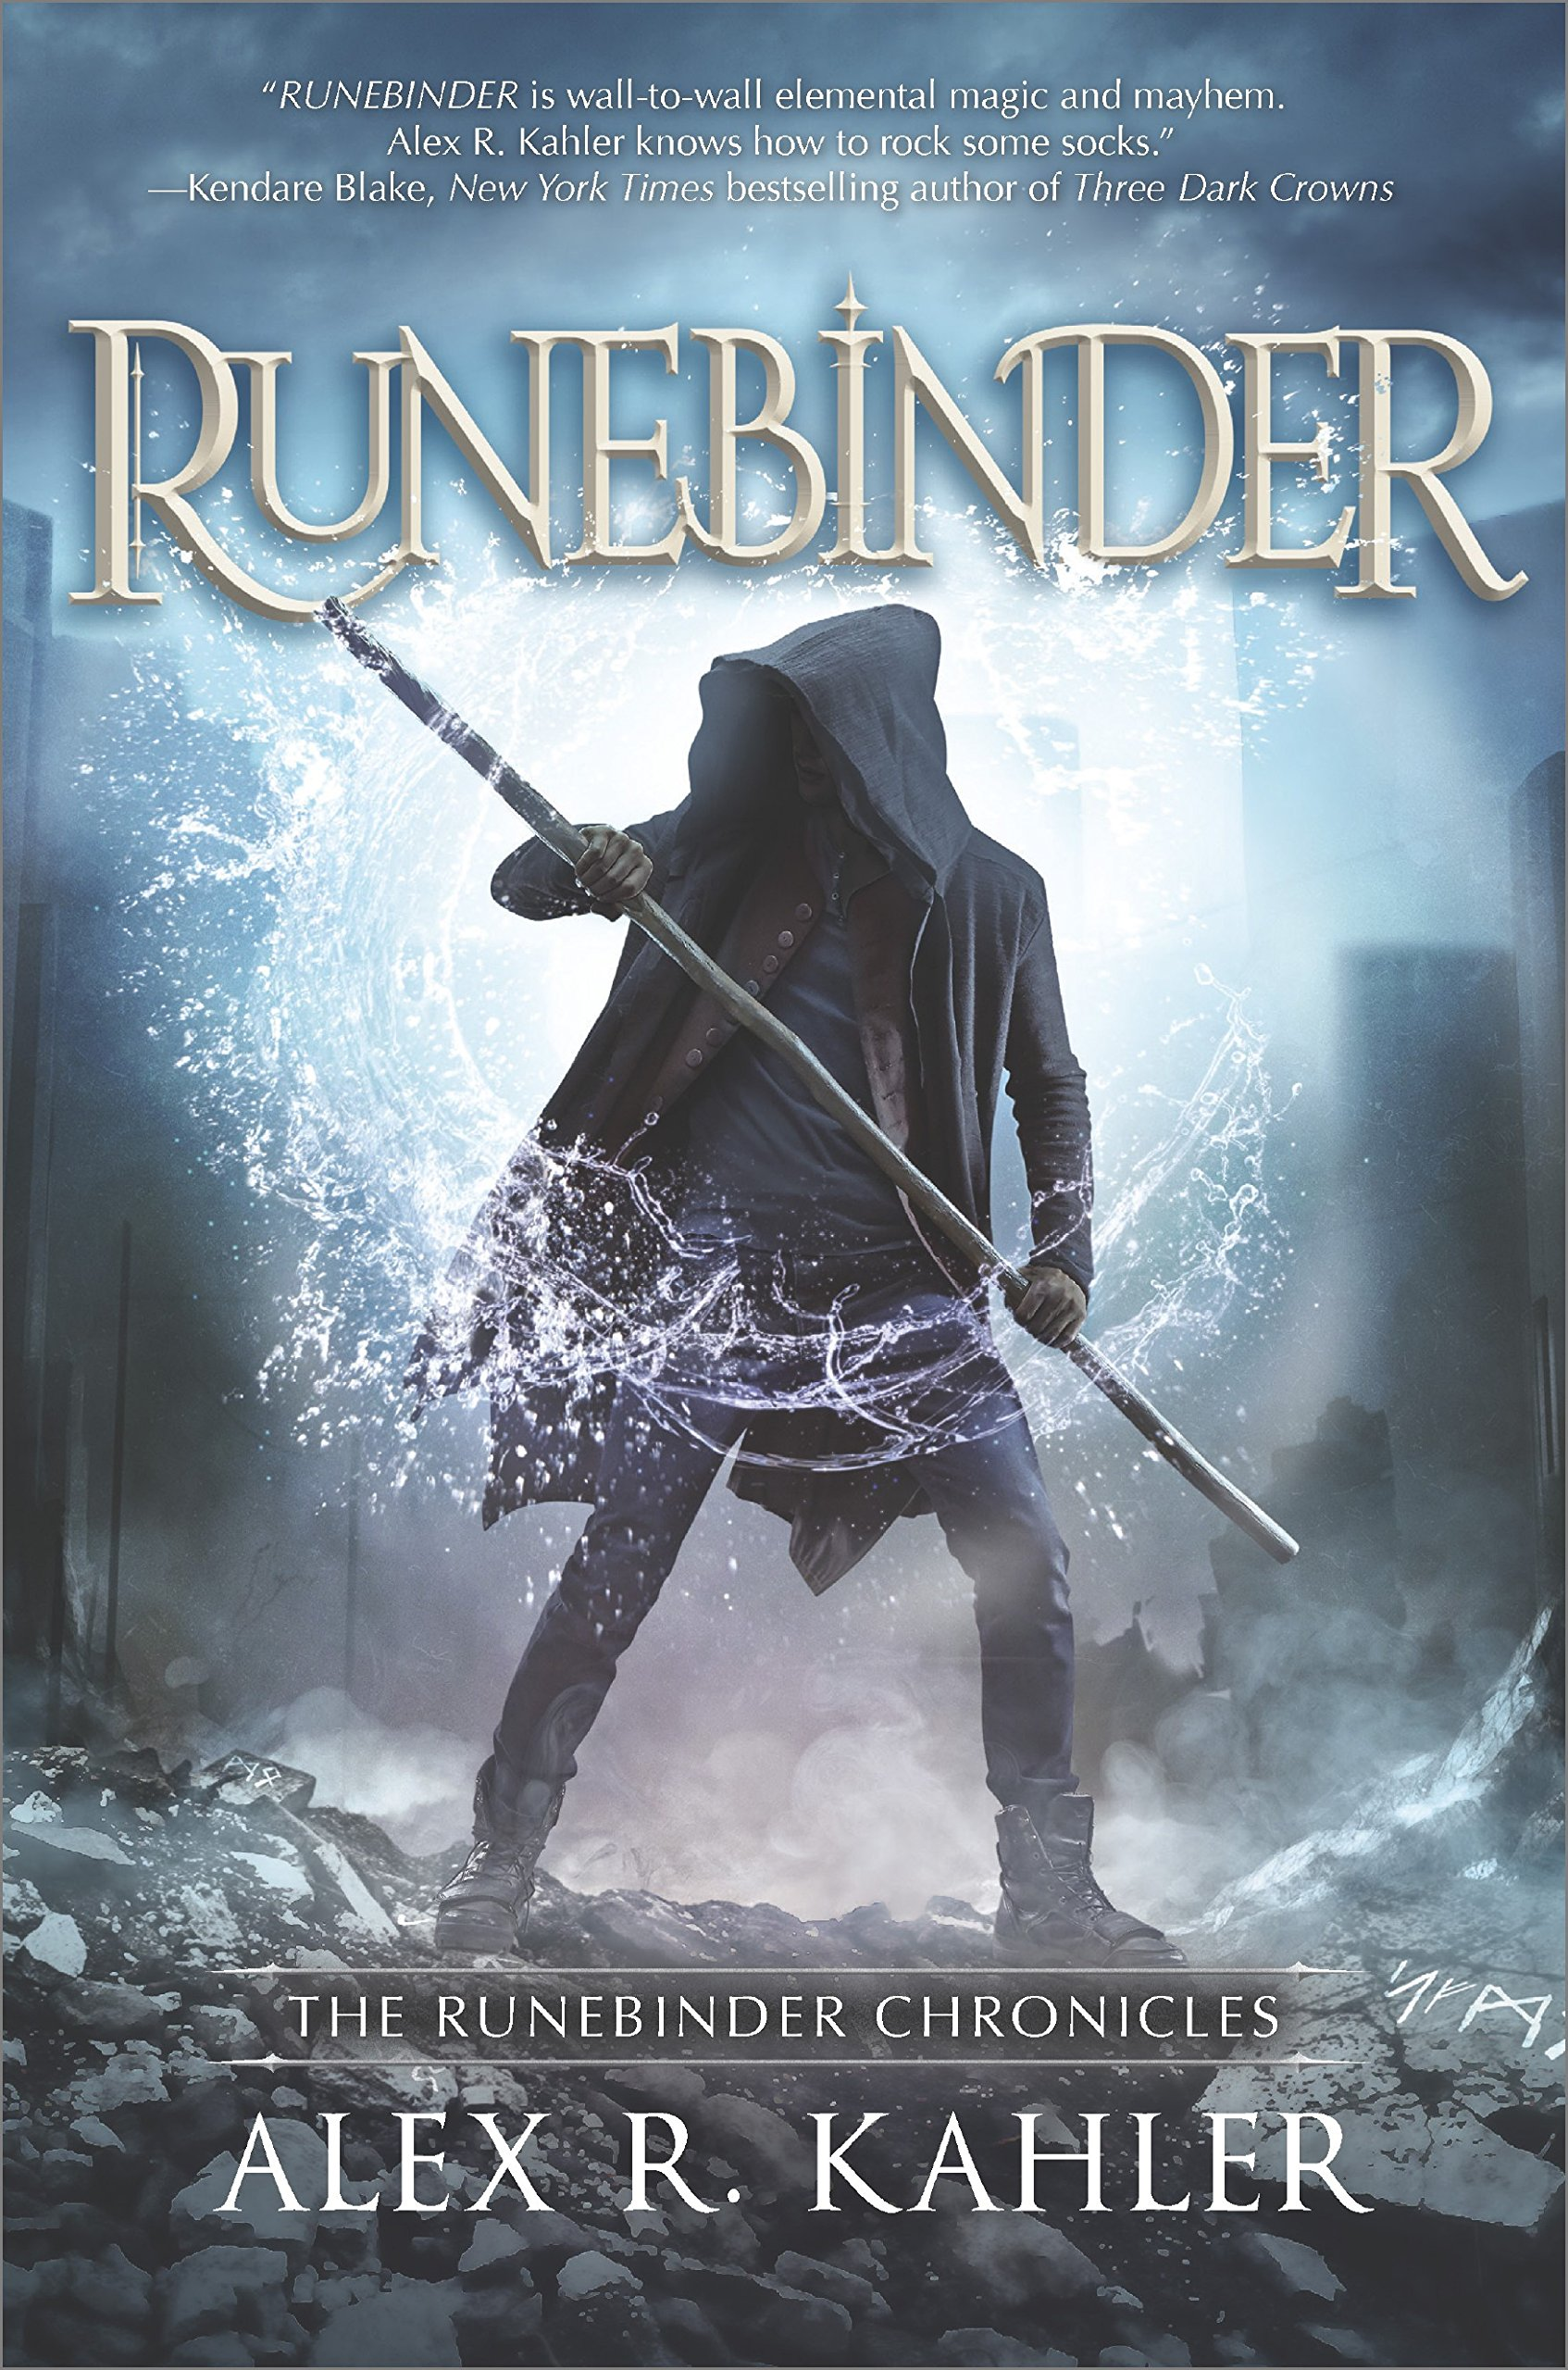 Review – Runebinder by Alex R. Kahler